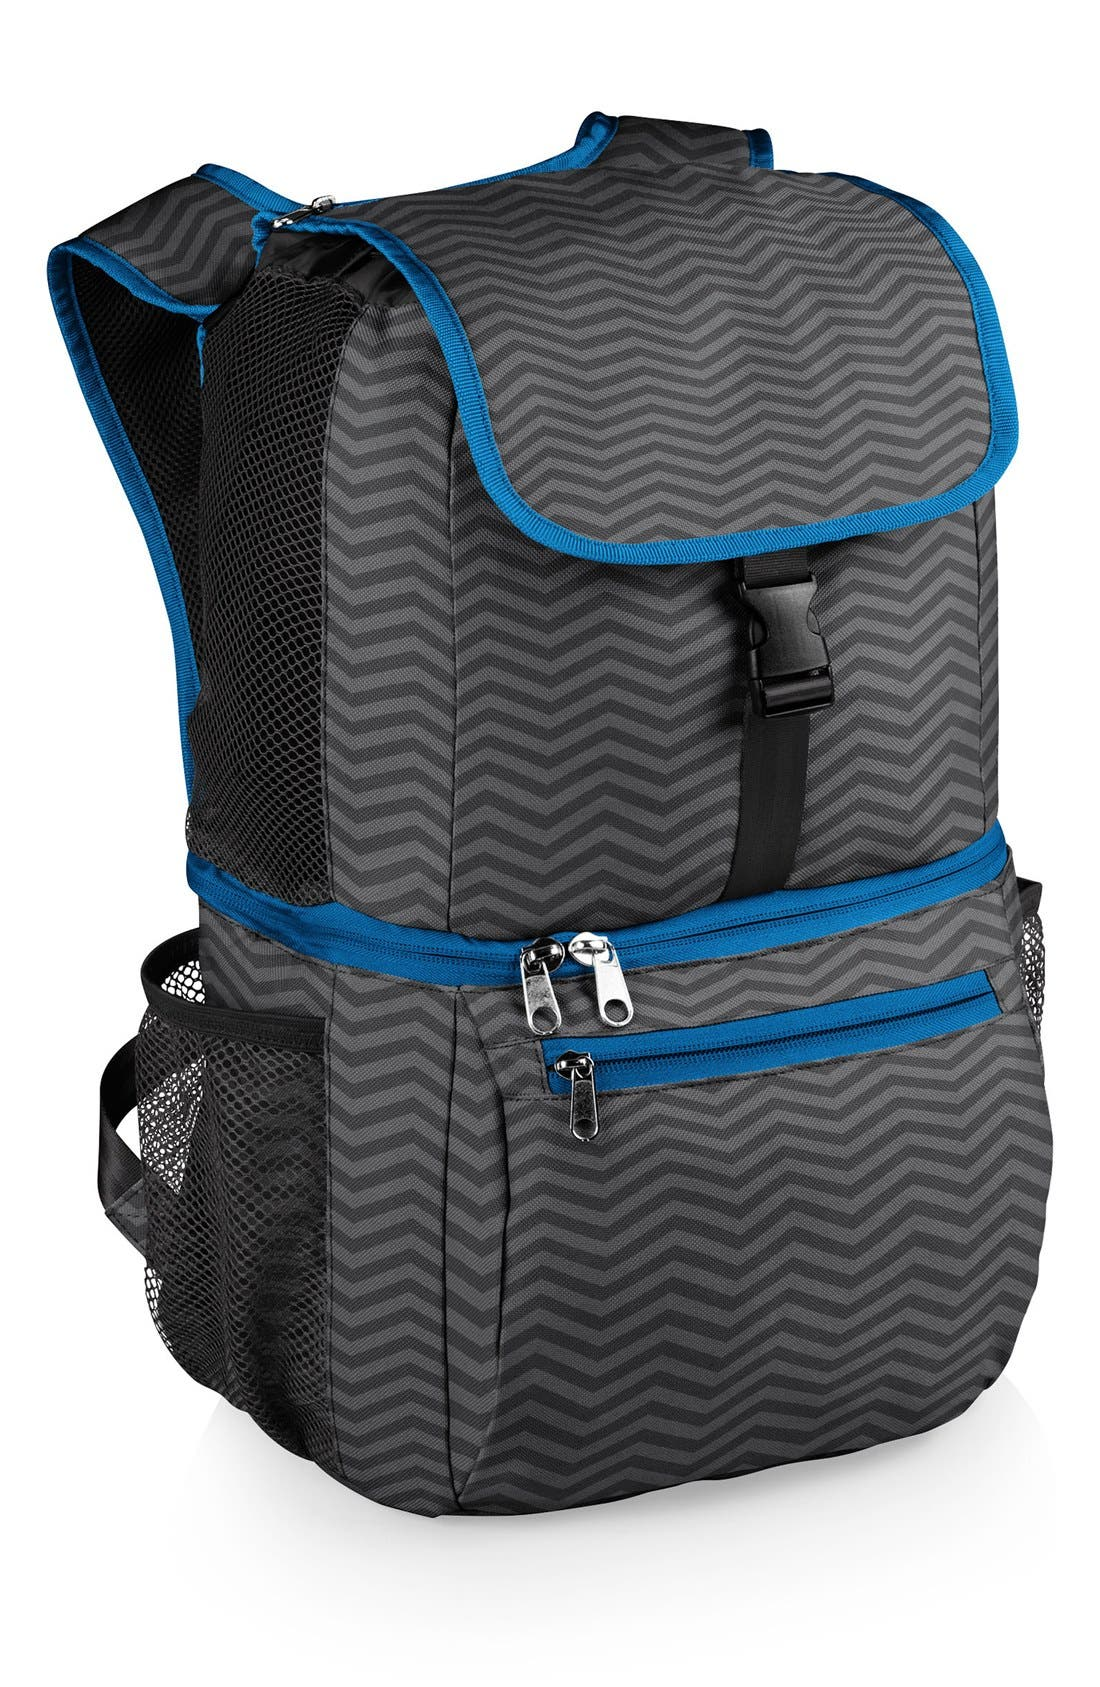 'Pismo' Insulated Cooler Backpack,                         Main,                         color, 020